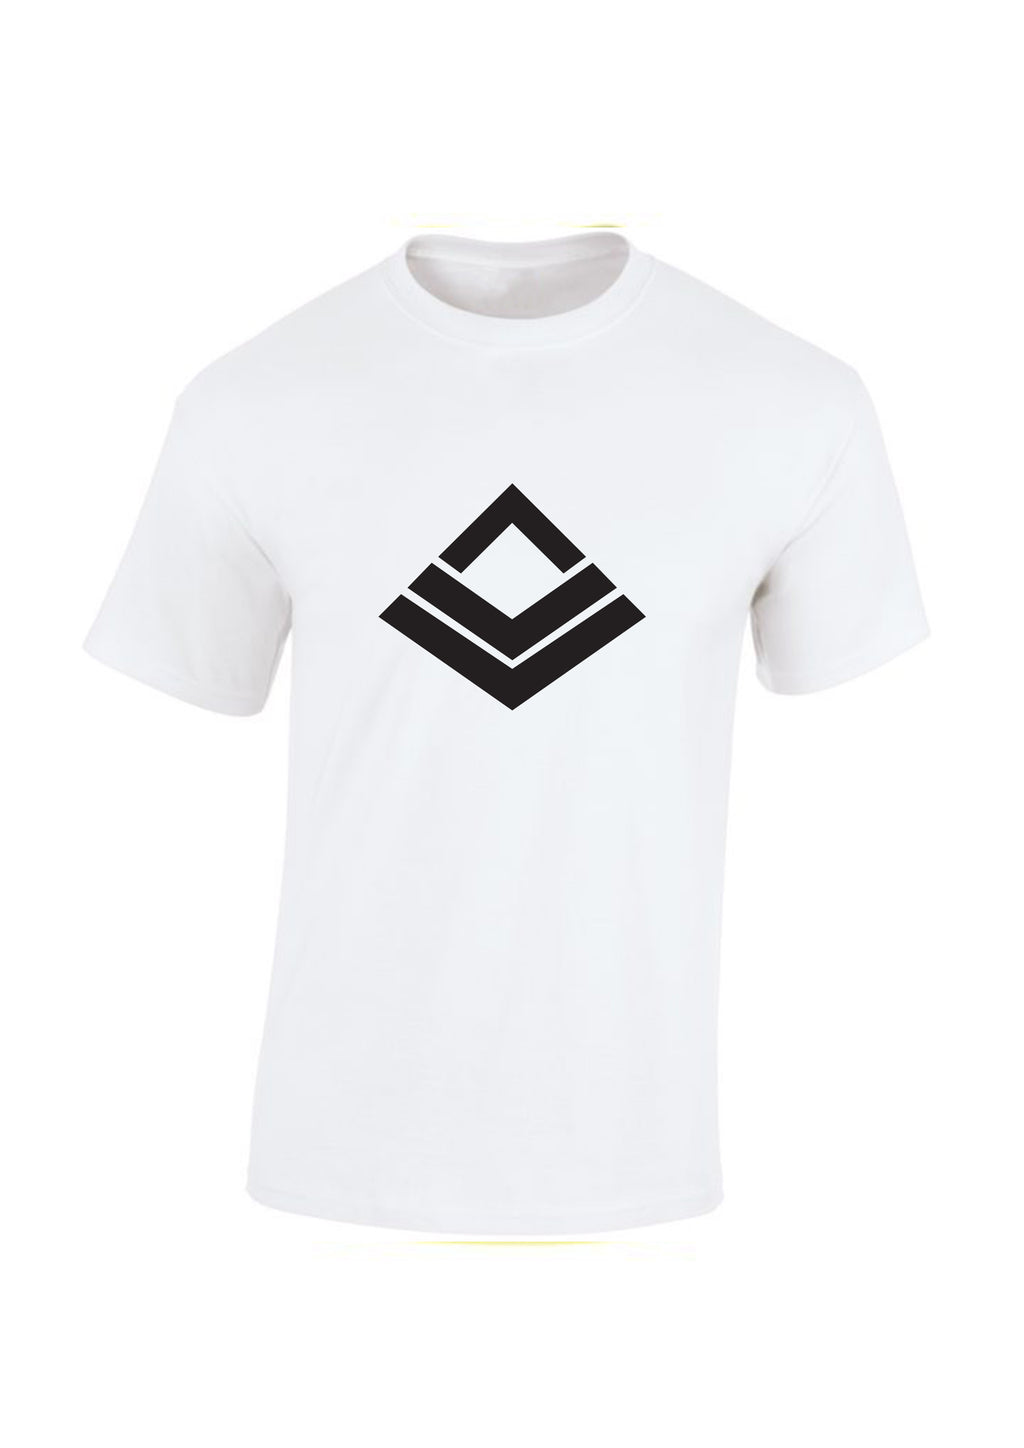 Swaggerlicious Classic London White T-Shirt - swaggerlicious-clothing.com